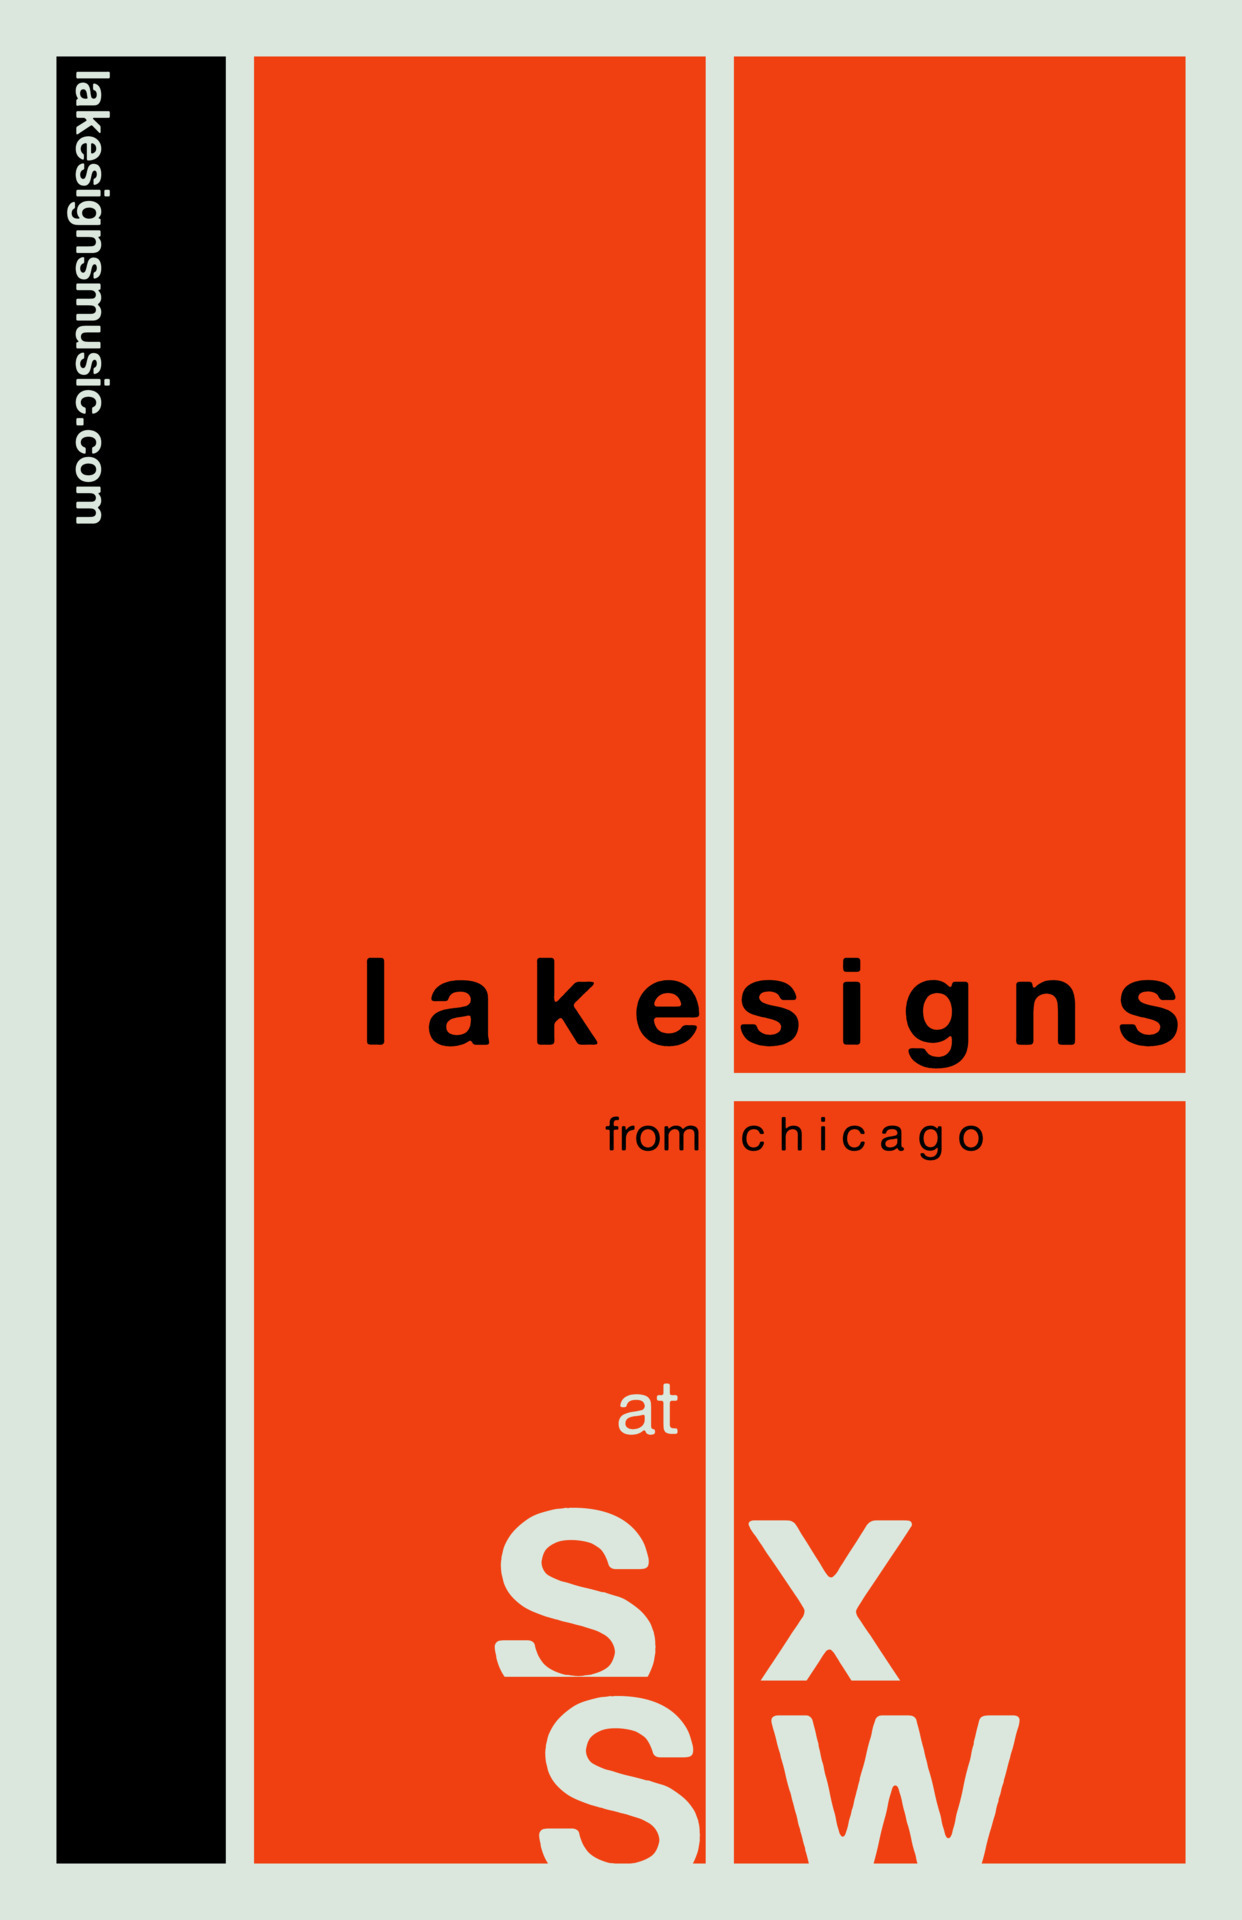 Lakesigns, from Chicago, at SXSW Festival (1 of 4)   designed by John Paul Thompson